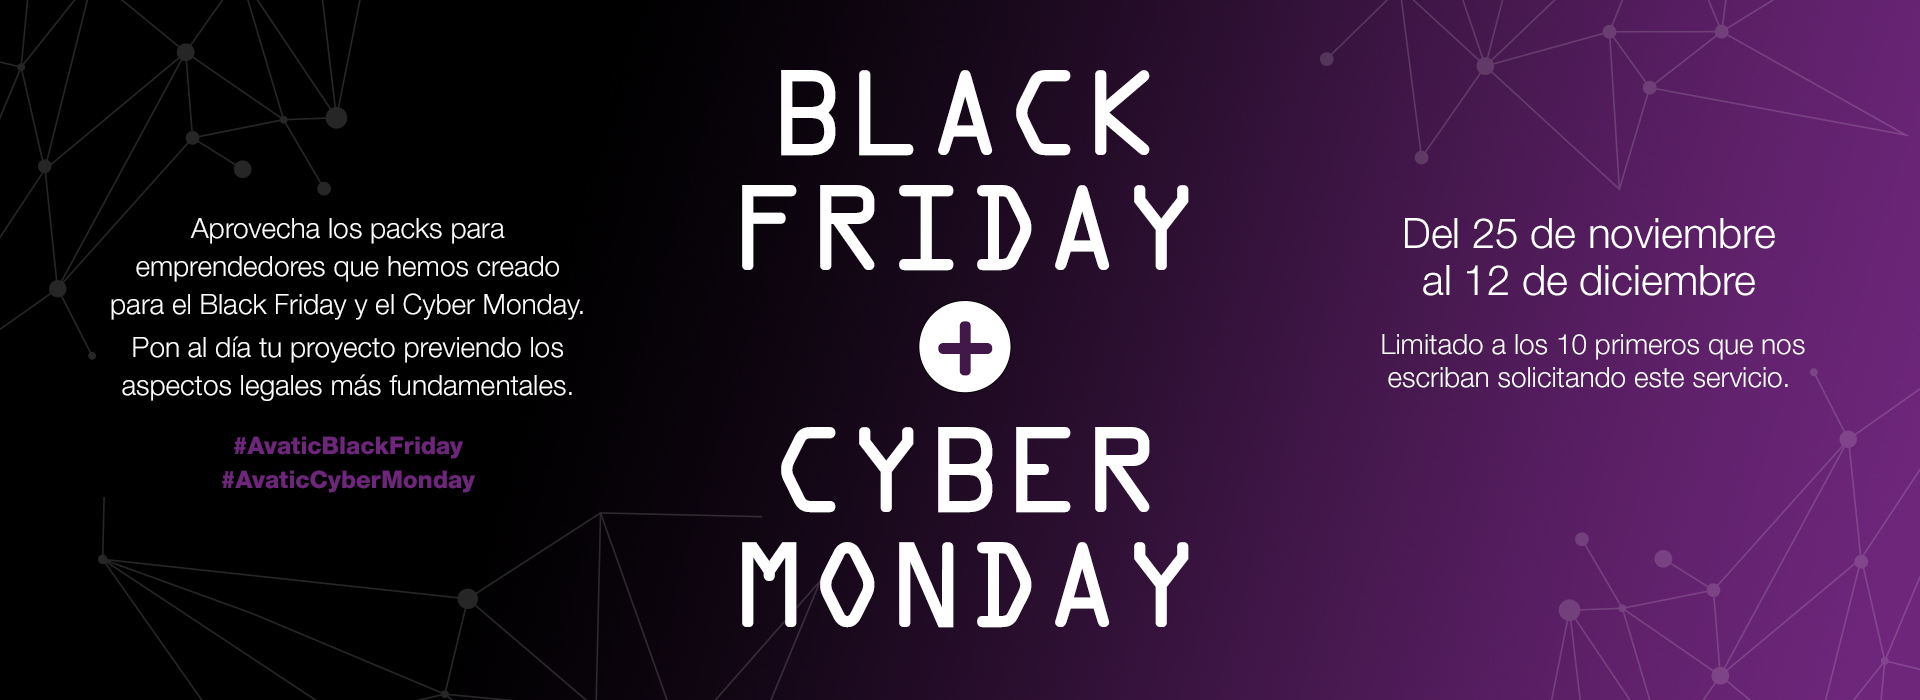 black-friday-cyber-monday_2016